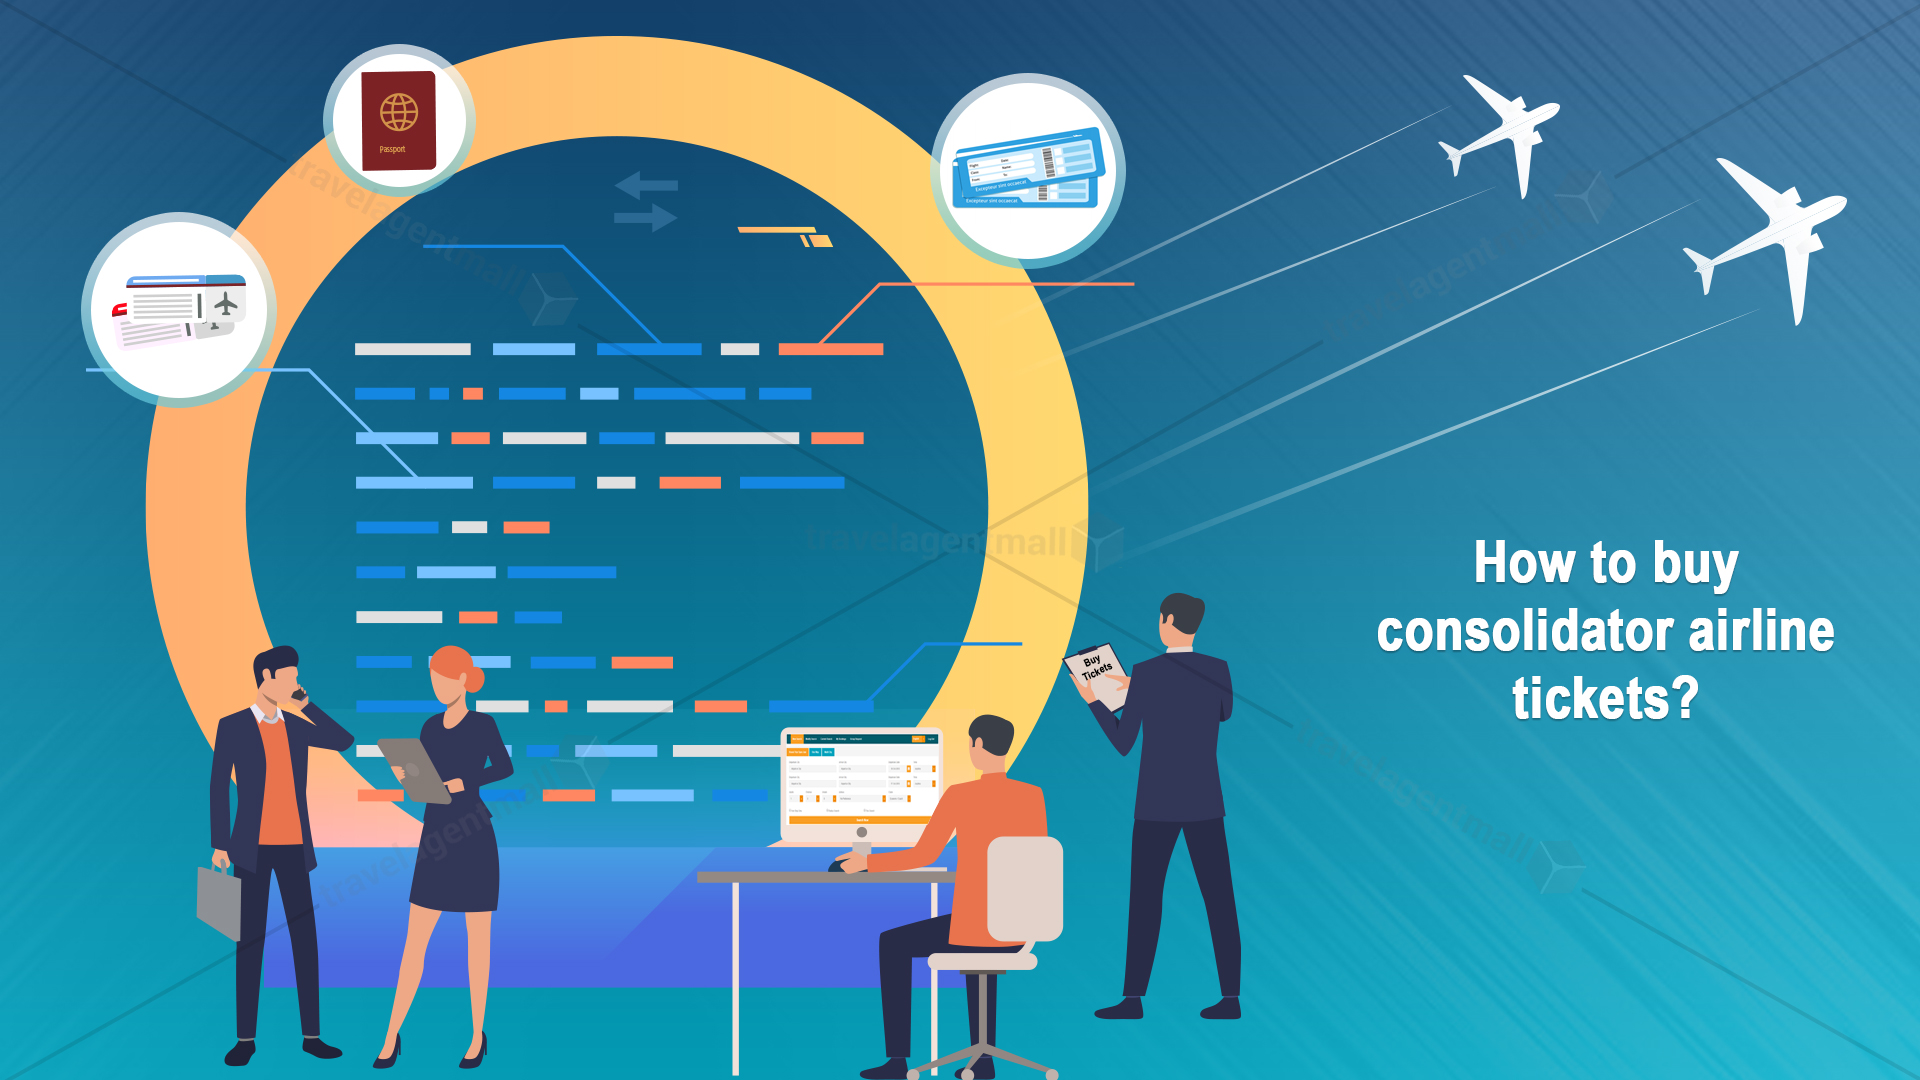 How to buy consolidator airline tickets?